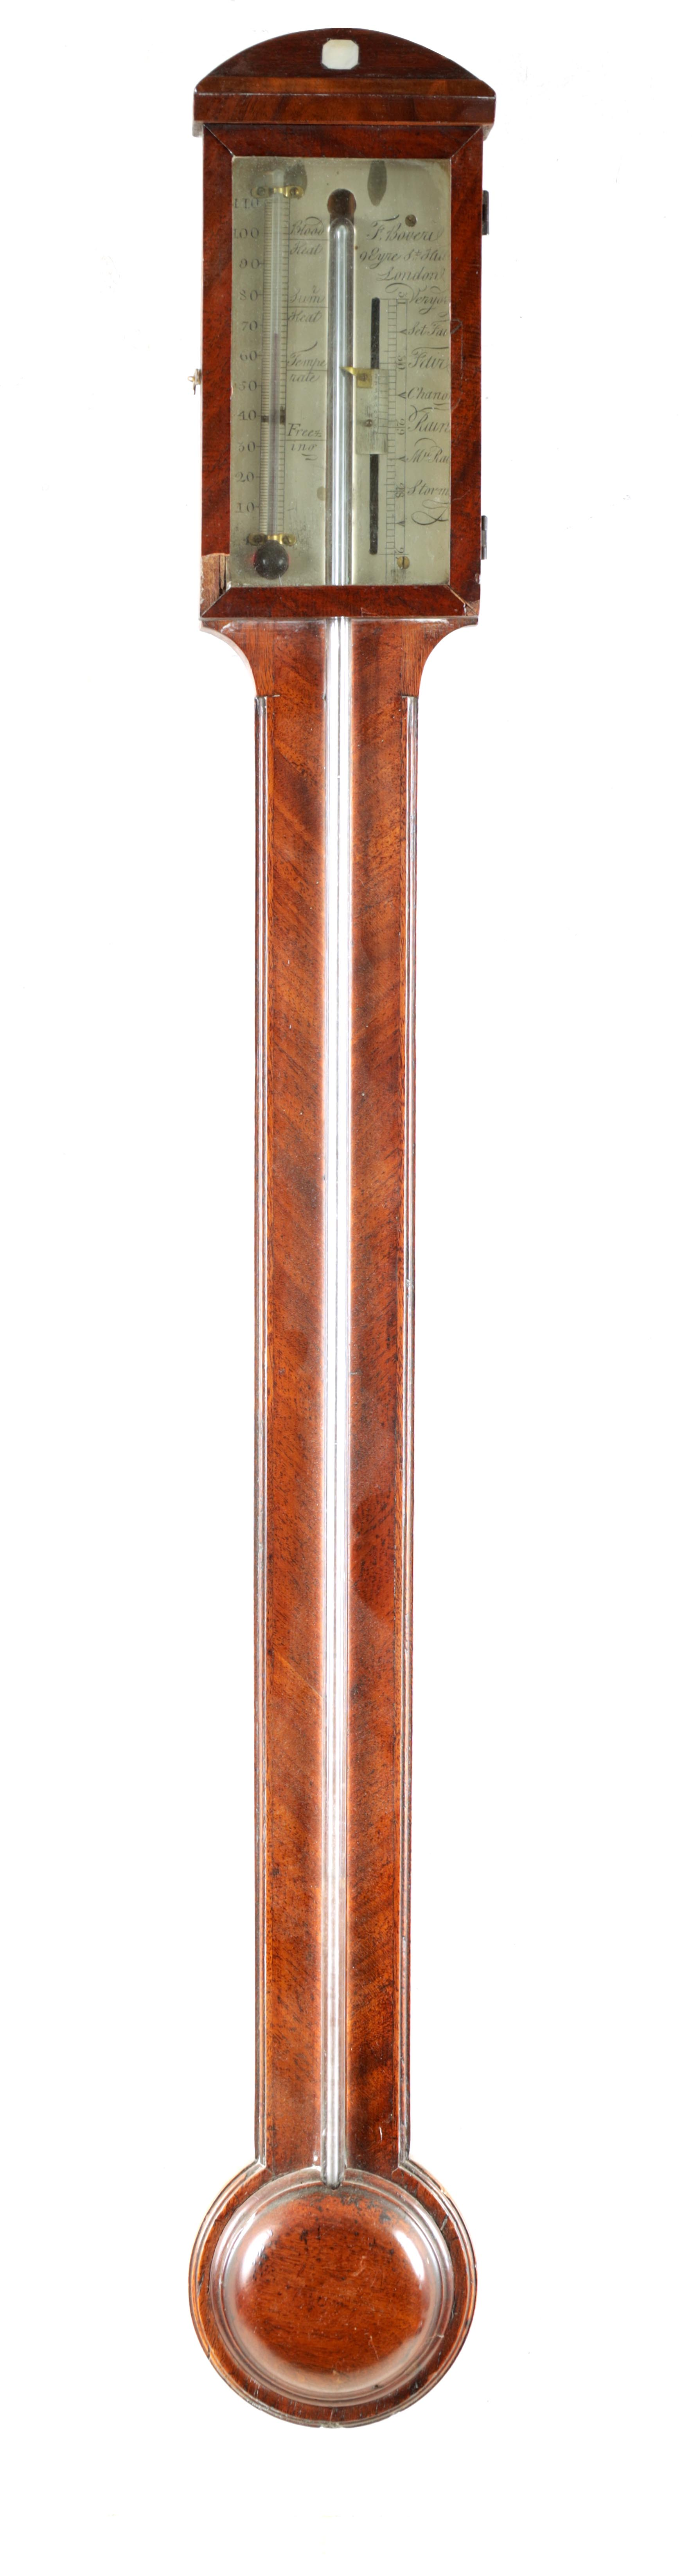 F. BOVERIL, 9 EYRE STREET, HILL, LONDON A GEORGE III MAHOGANY STICK BAROMETER the case with arched